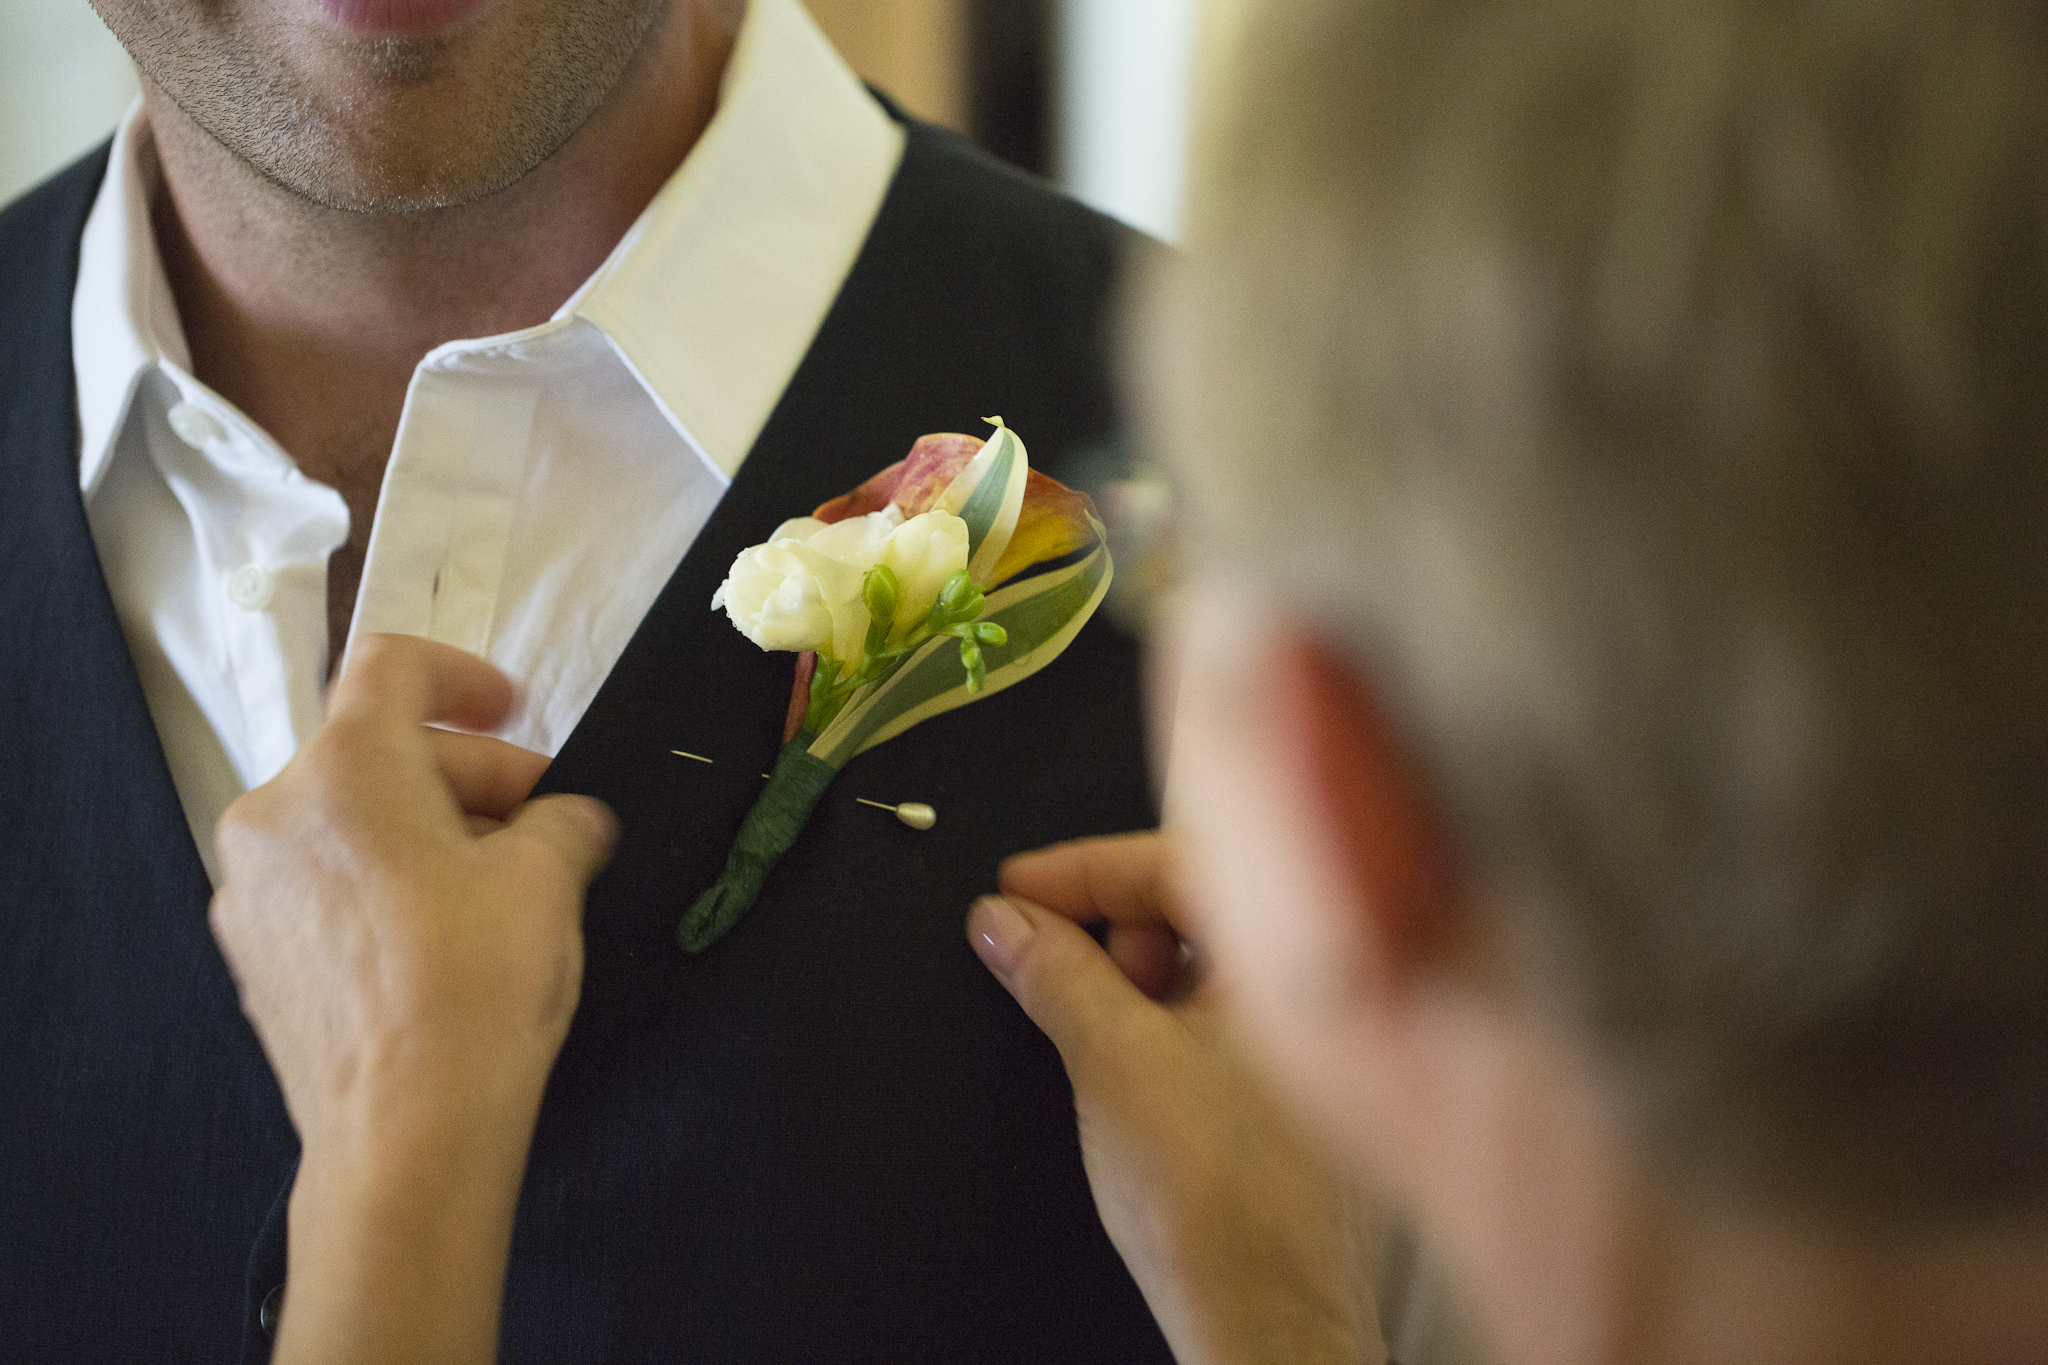 Mother puts flowers on groom